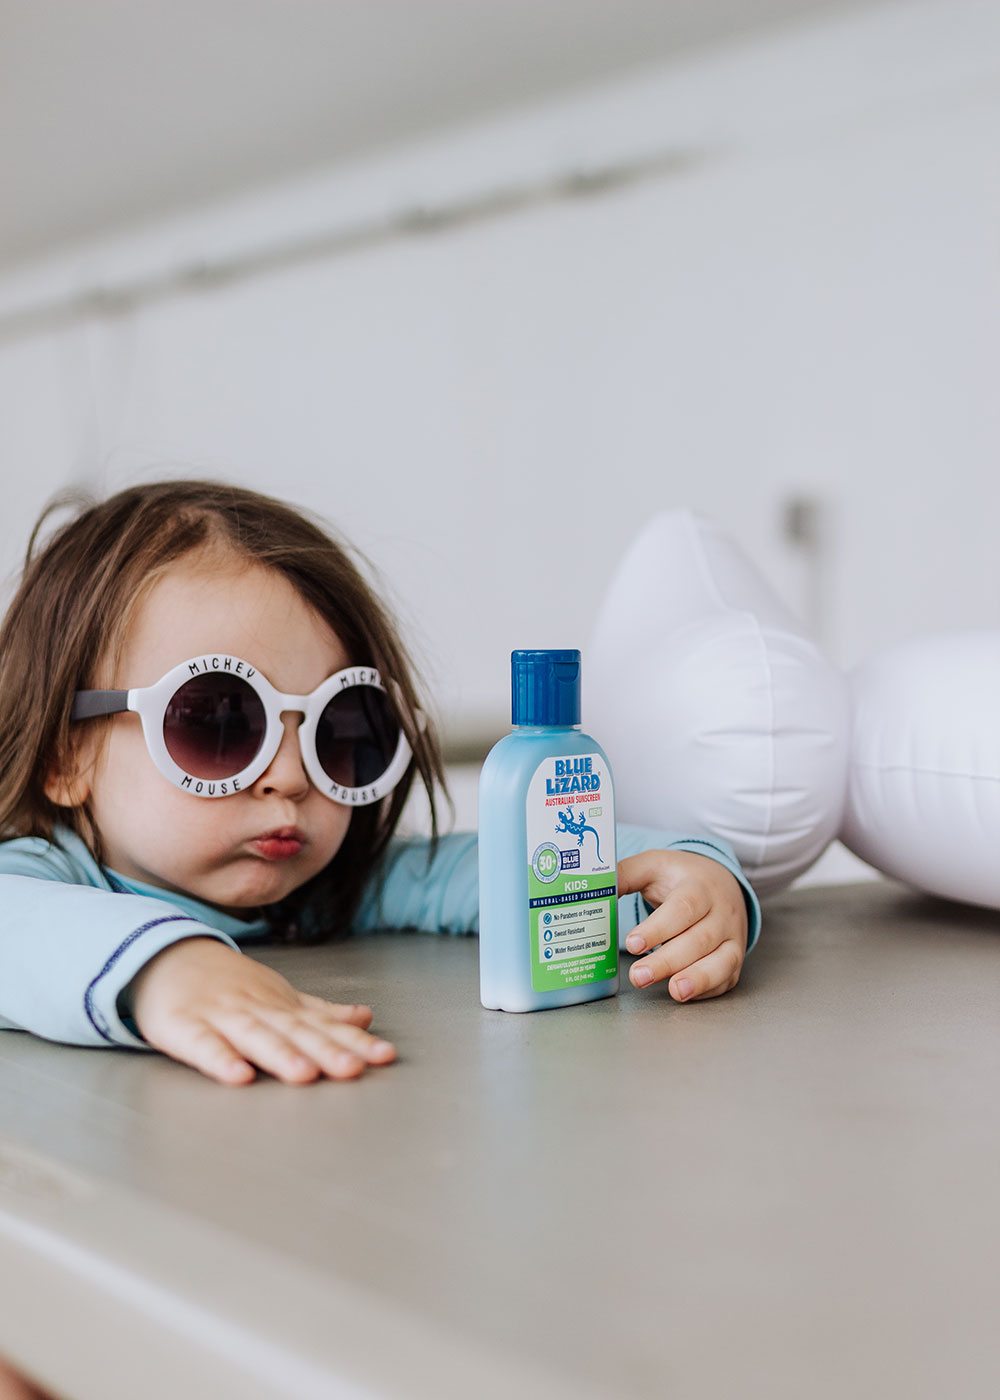 watch the bottle turn from white to blue in the presence of the sun's harmful UV rays! | thelovedesignedlife.com #bluelizardaustraliansunscreen #summersunready